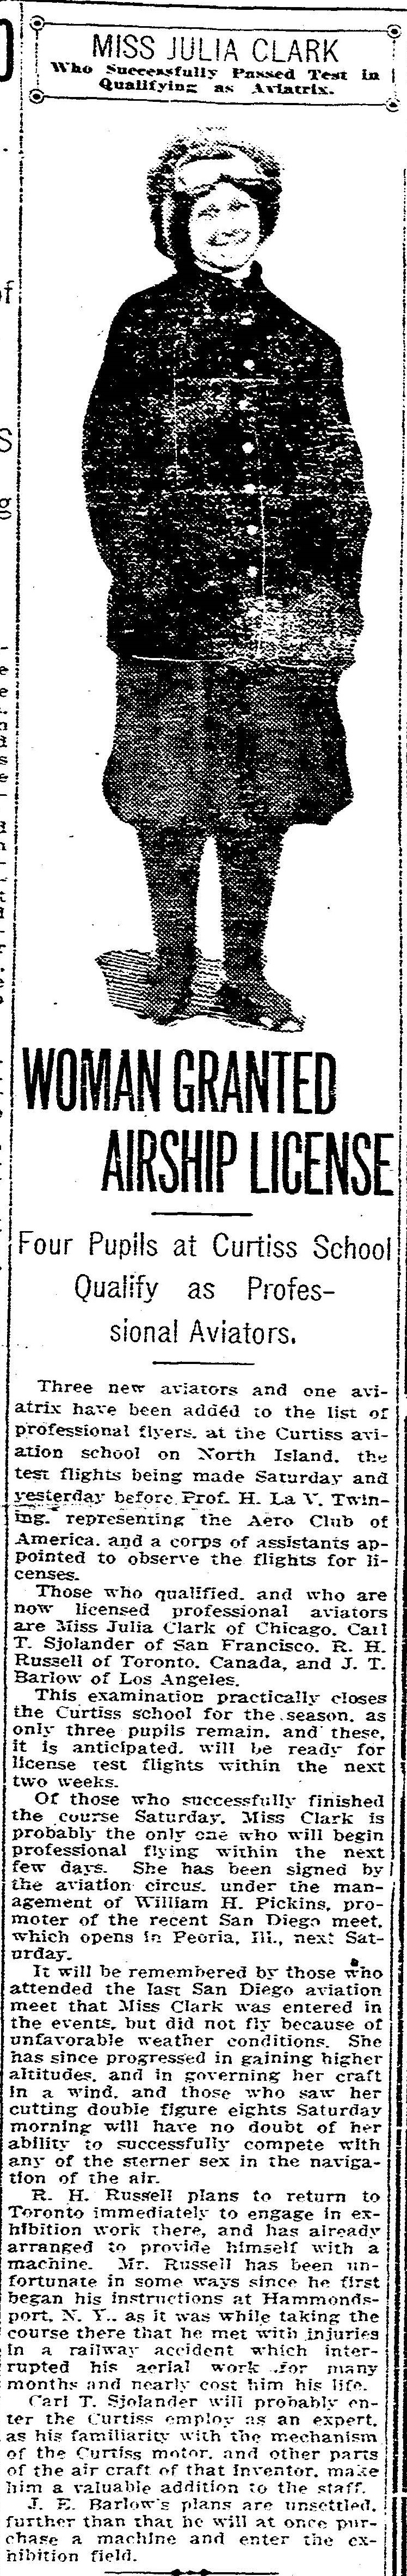 From the Archives: 1912: Julia Clark would rather fly than eat